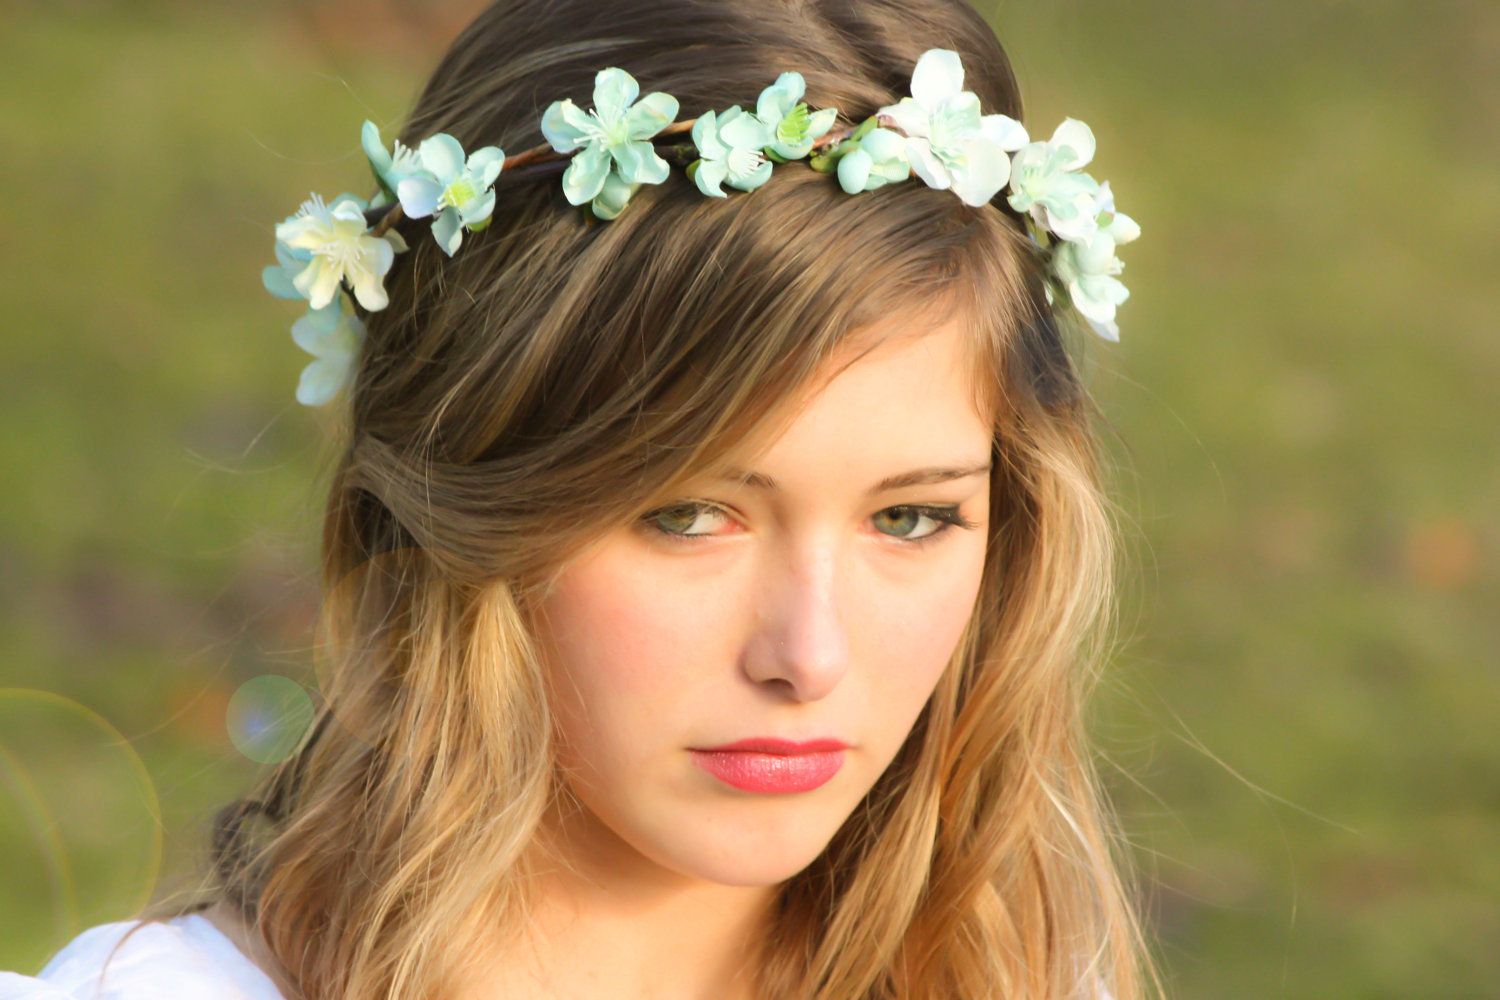 Hair Accessories for Wreaths and Wedding Hairstyles